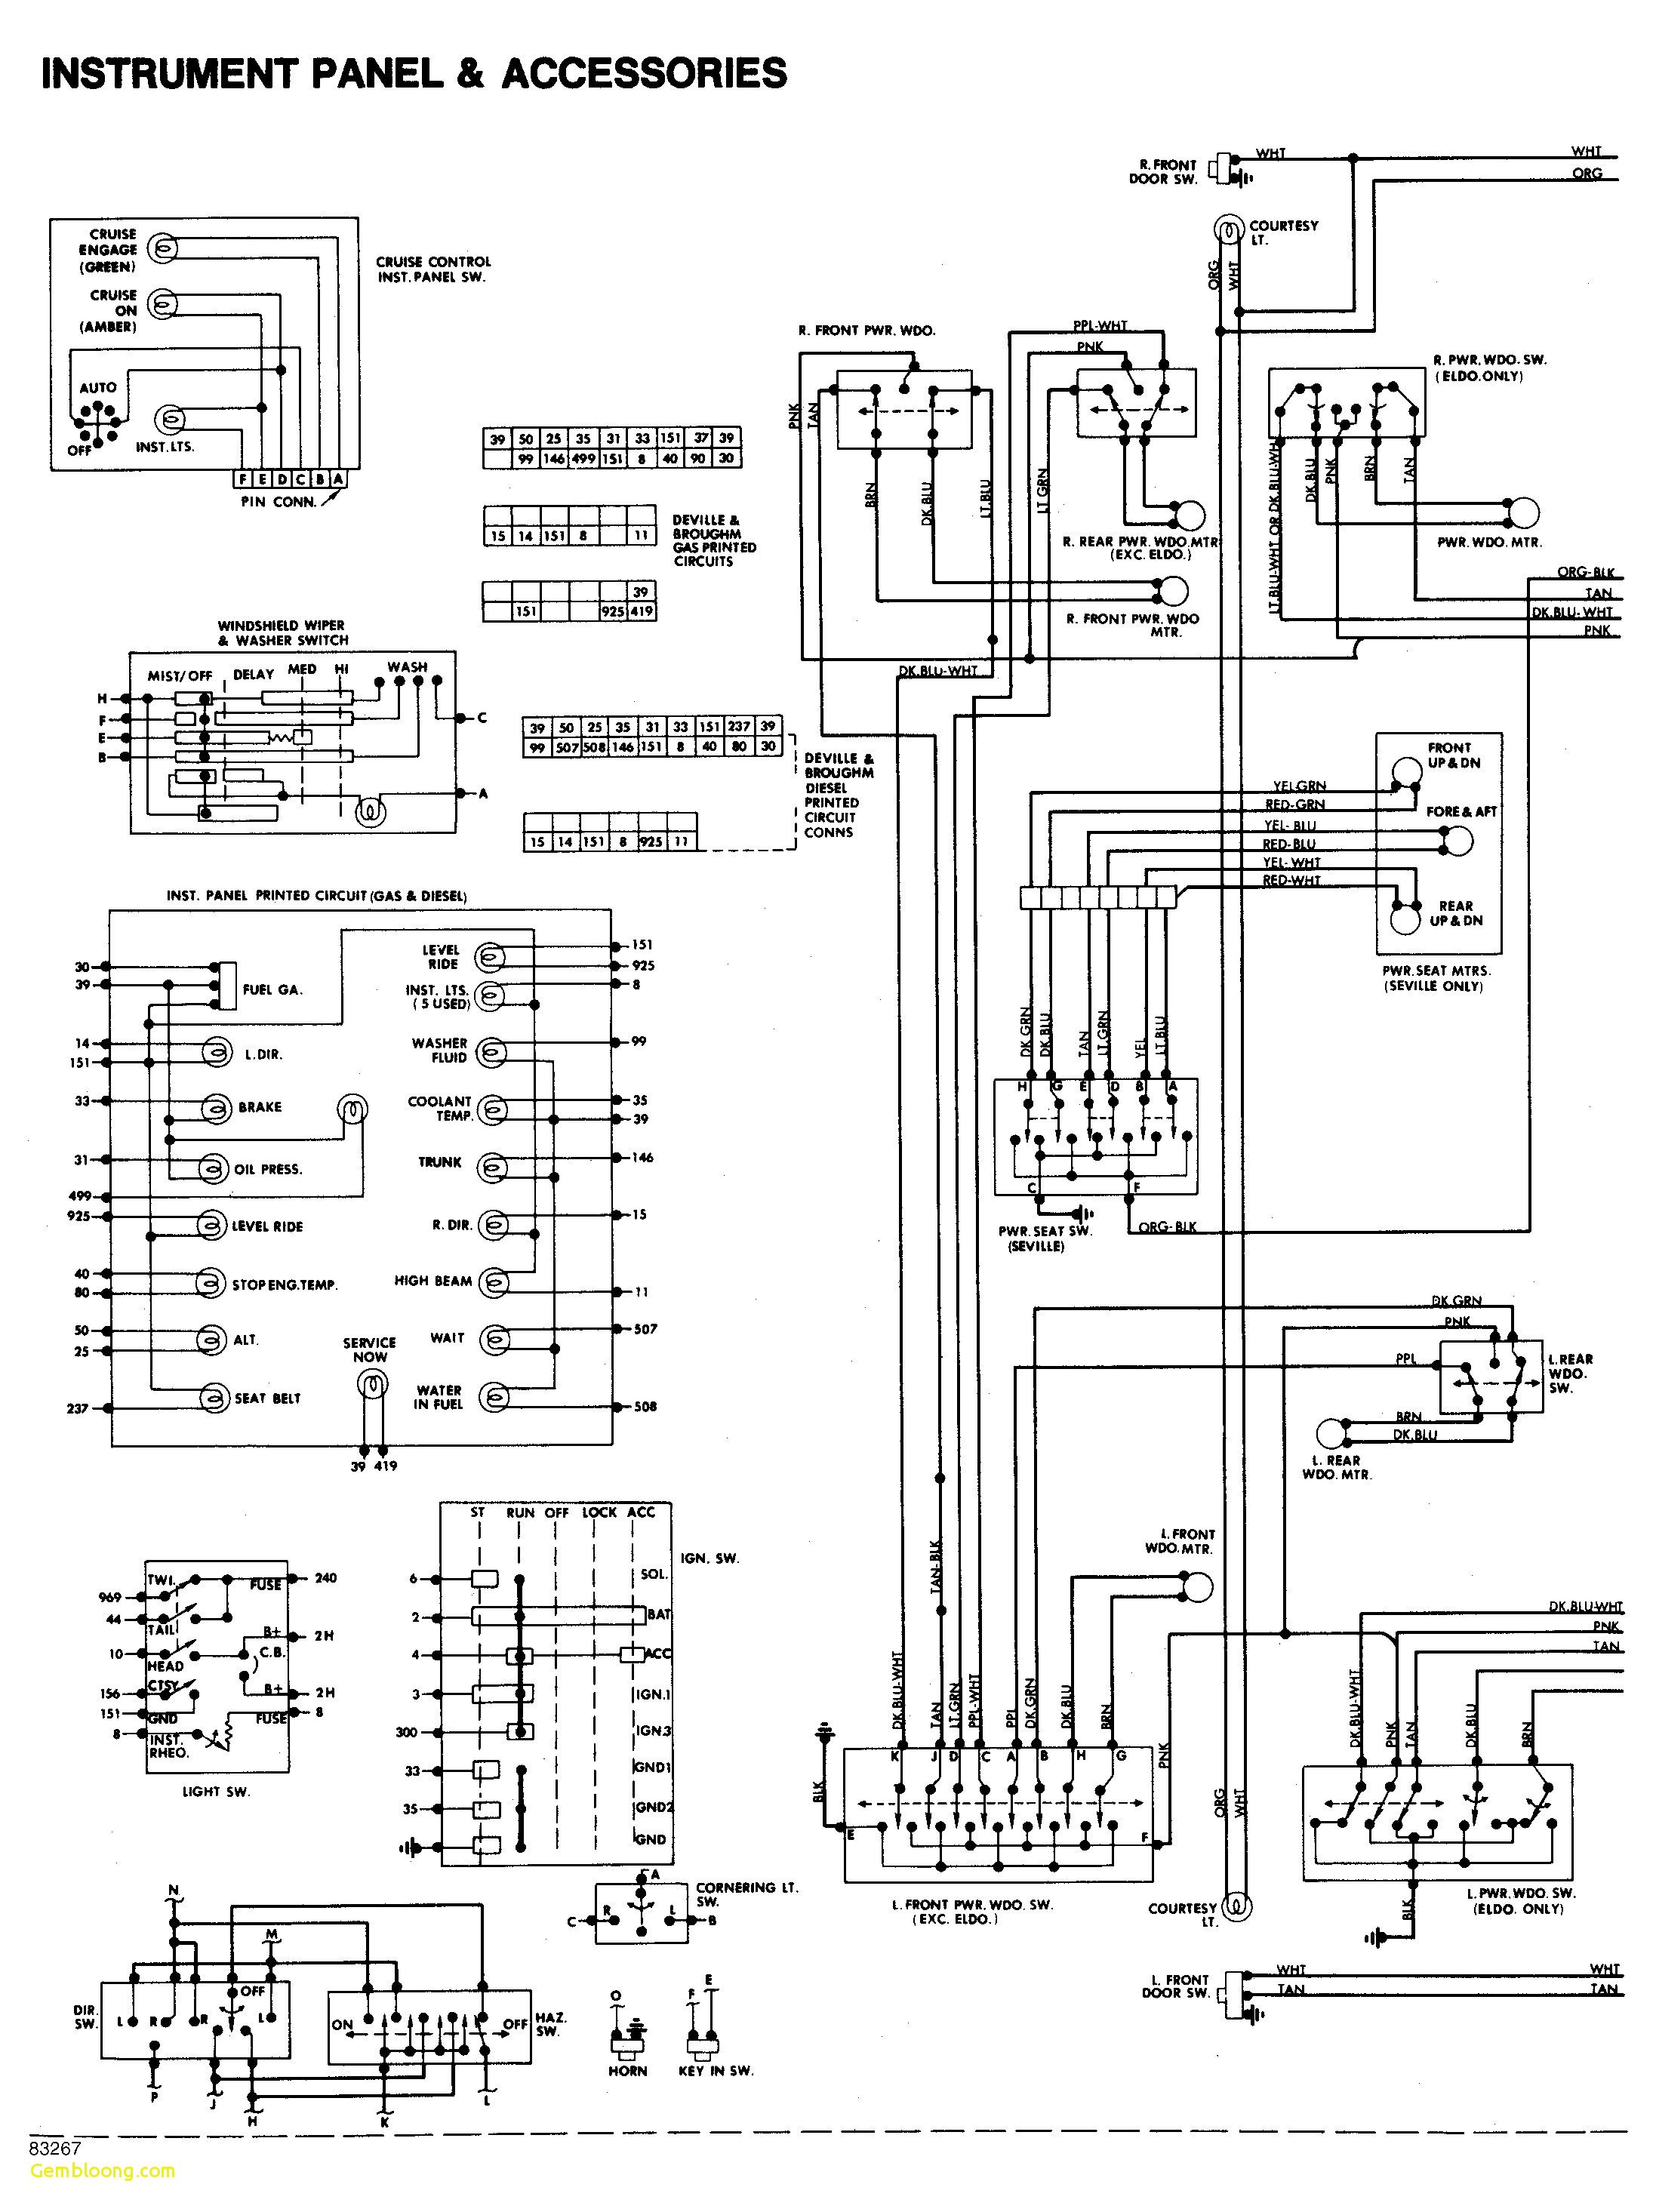 22 Stunning Free Vehicle Wiring Diagrams Https Bacamajalah Com 22 Stunning Free Vehicle Wiring Electrical Wiring Diagram Diagram Design Electrical Diagram